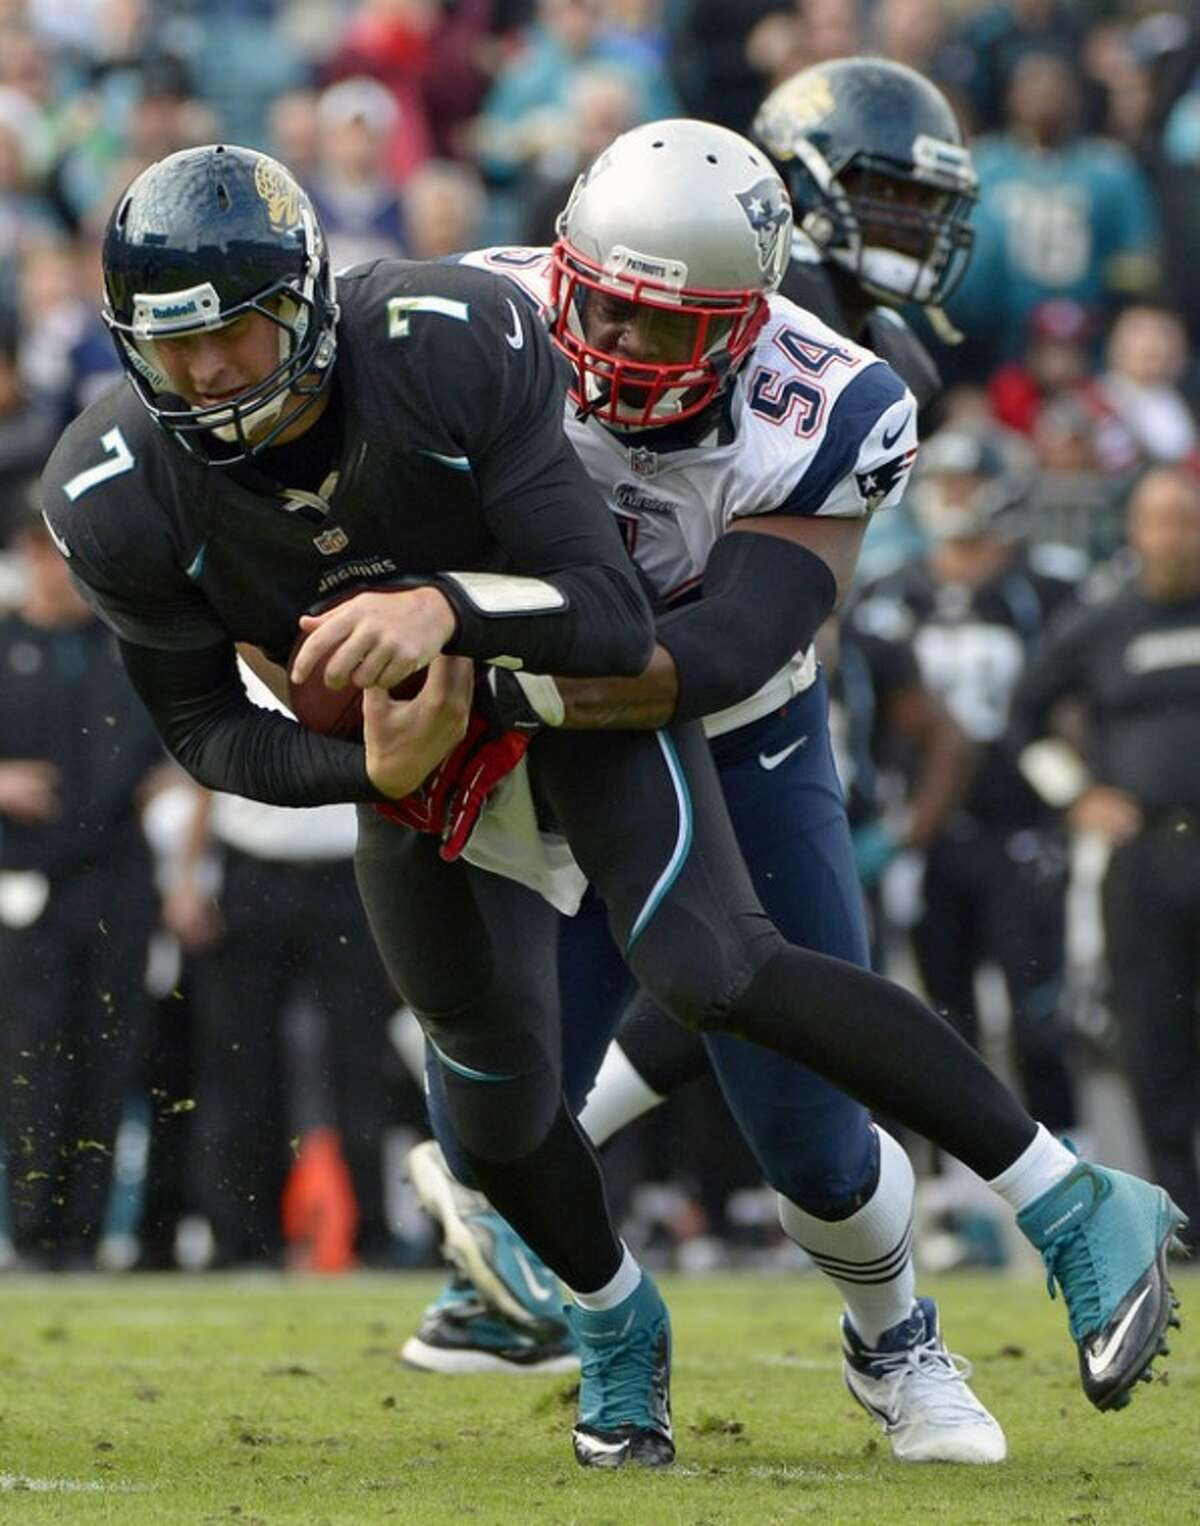 Jacksonville Jaguars quarterback Chad Henne (7) is sacked by New England Patriots outside linebacker Dont'a Hightower (54) during the second half of an NFL football game in Jacksonville, Fla., Sunday, Dec. 23, 2012. The Patriots won 23-16. (AP Photo/Phelan M. Ebenhack)